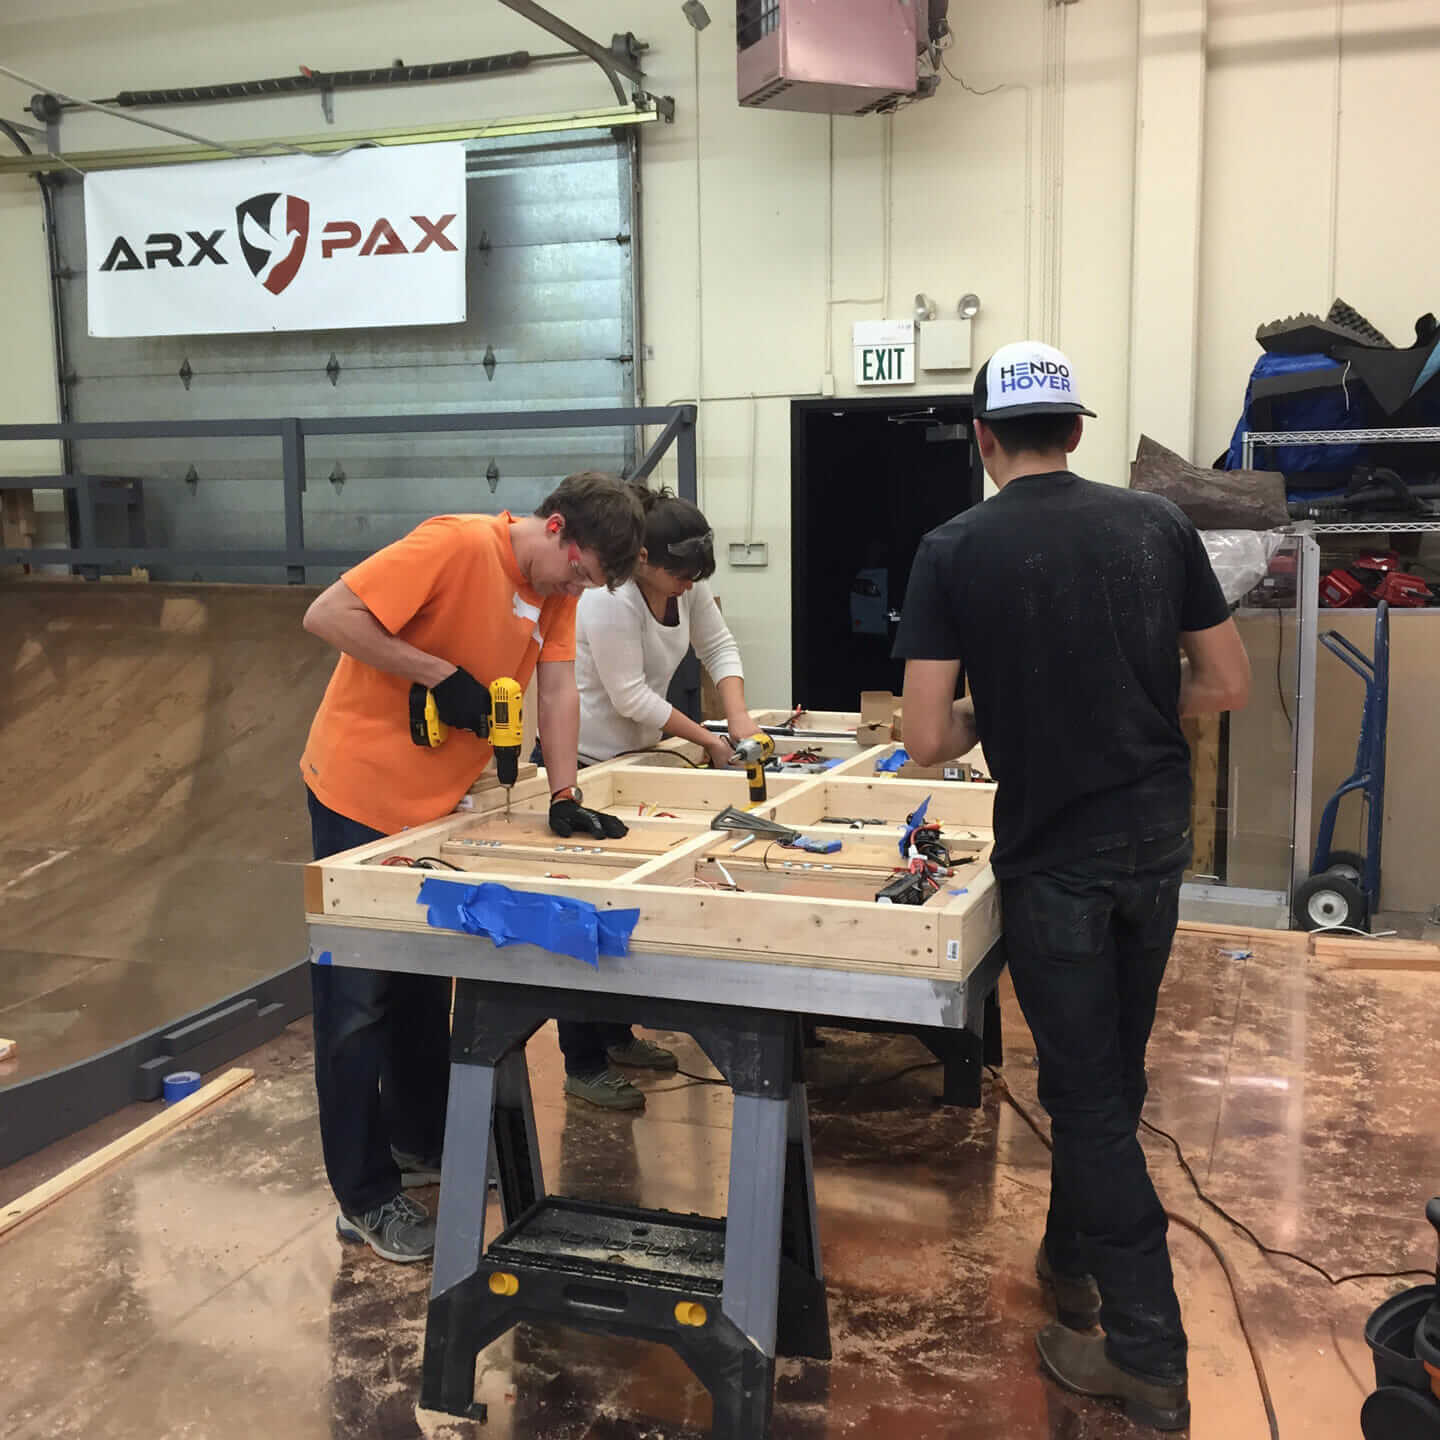 arx pax team builders